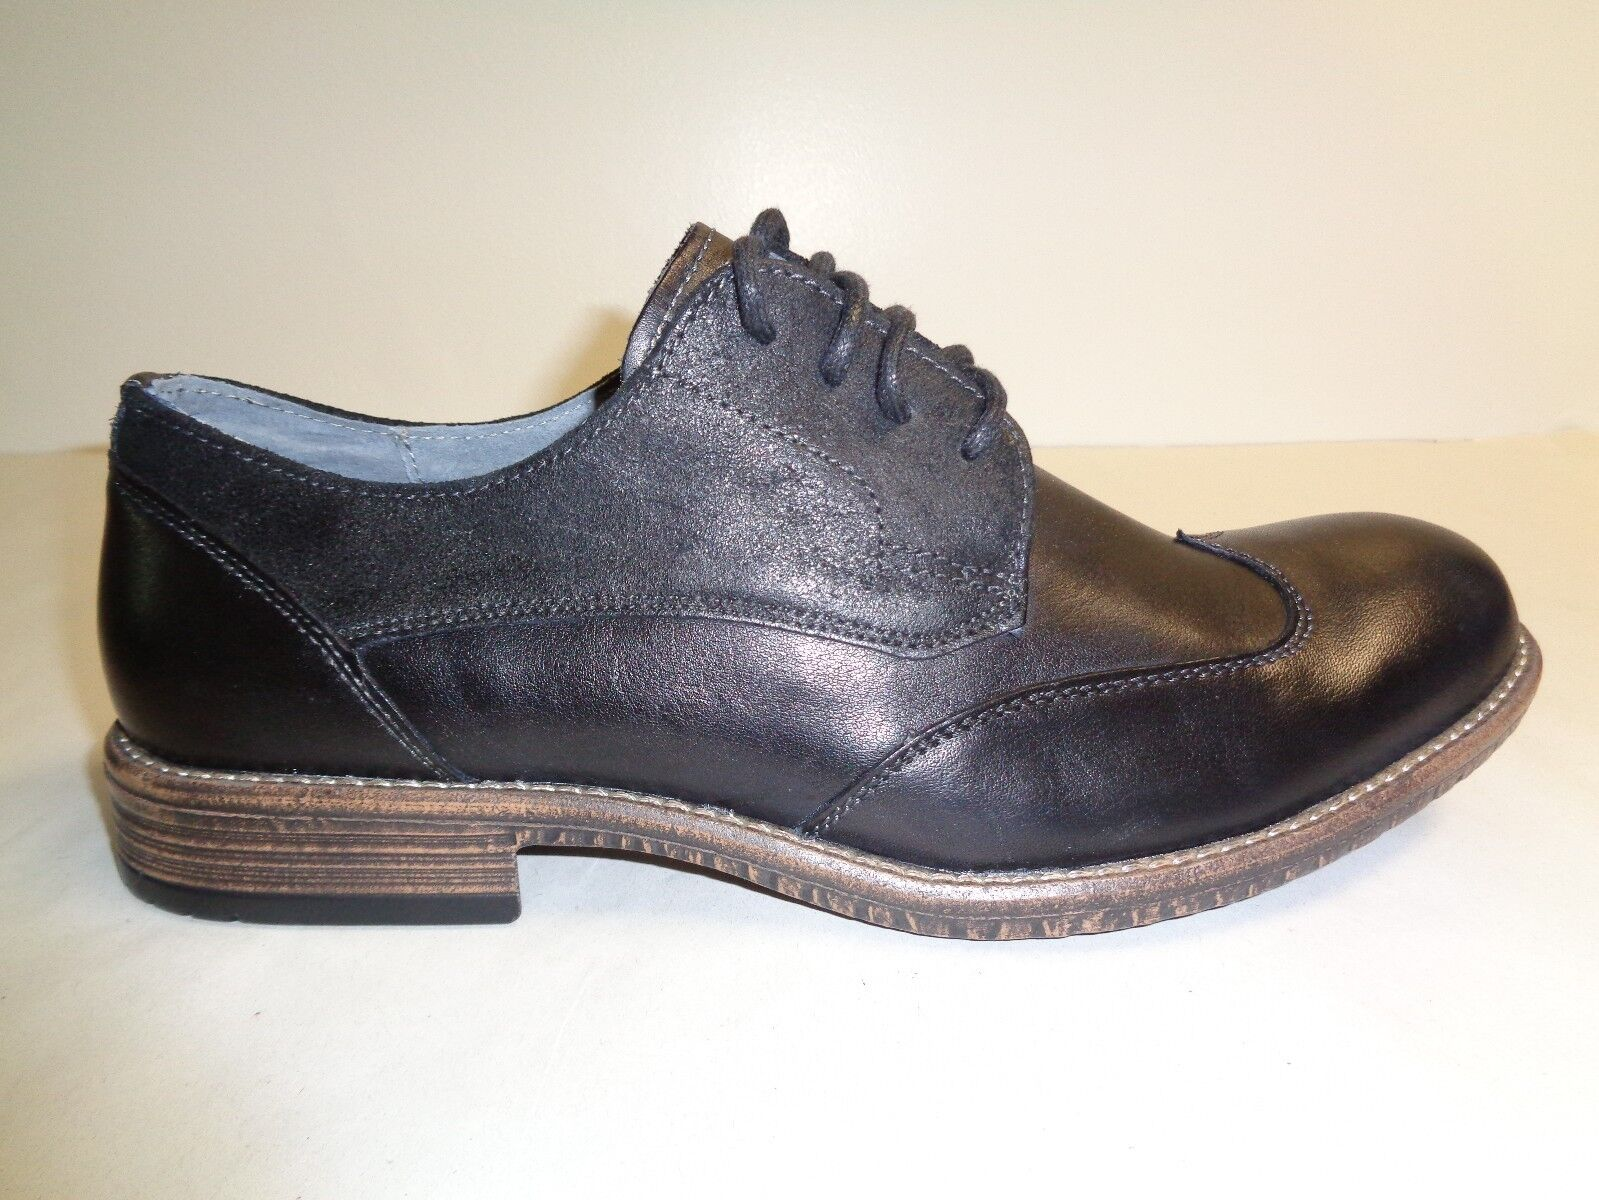 Steve Madden Size 10.5 M GALLONN Black Leather Oxfords New Mens Shoes